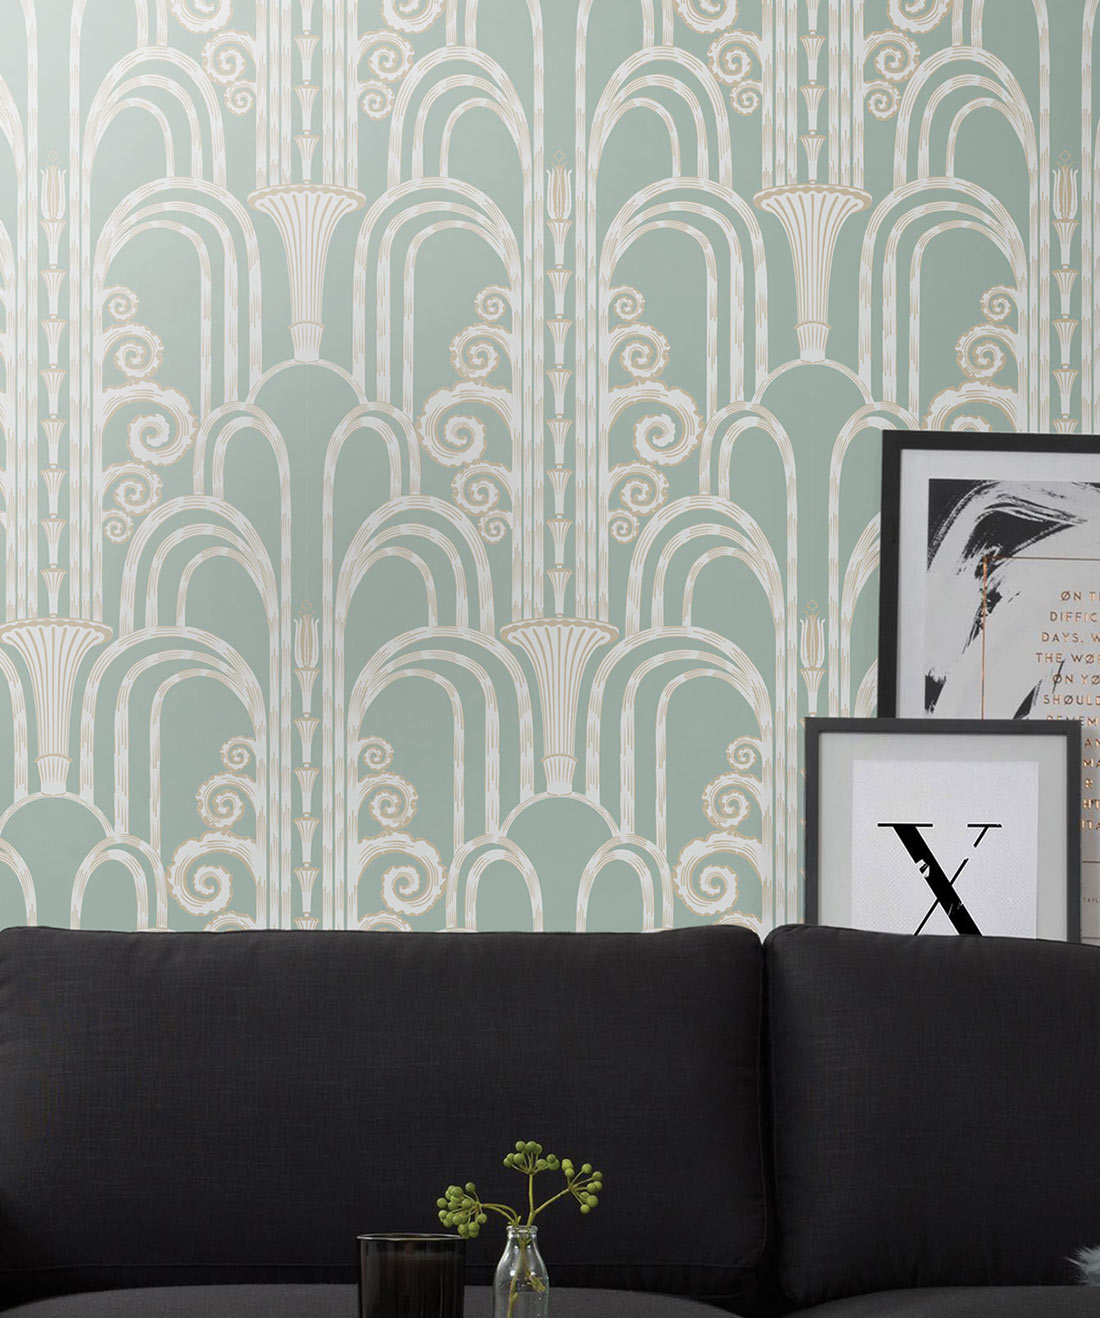 Wallpaper Trends For 2020 Milton King